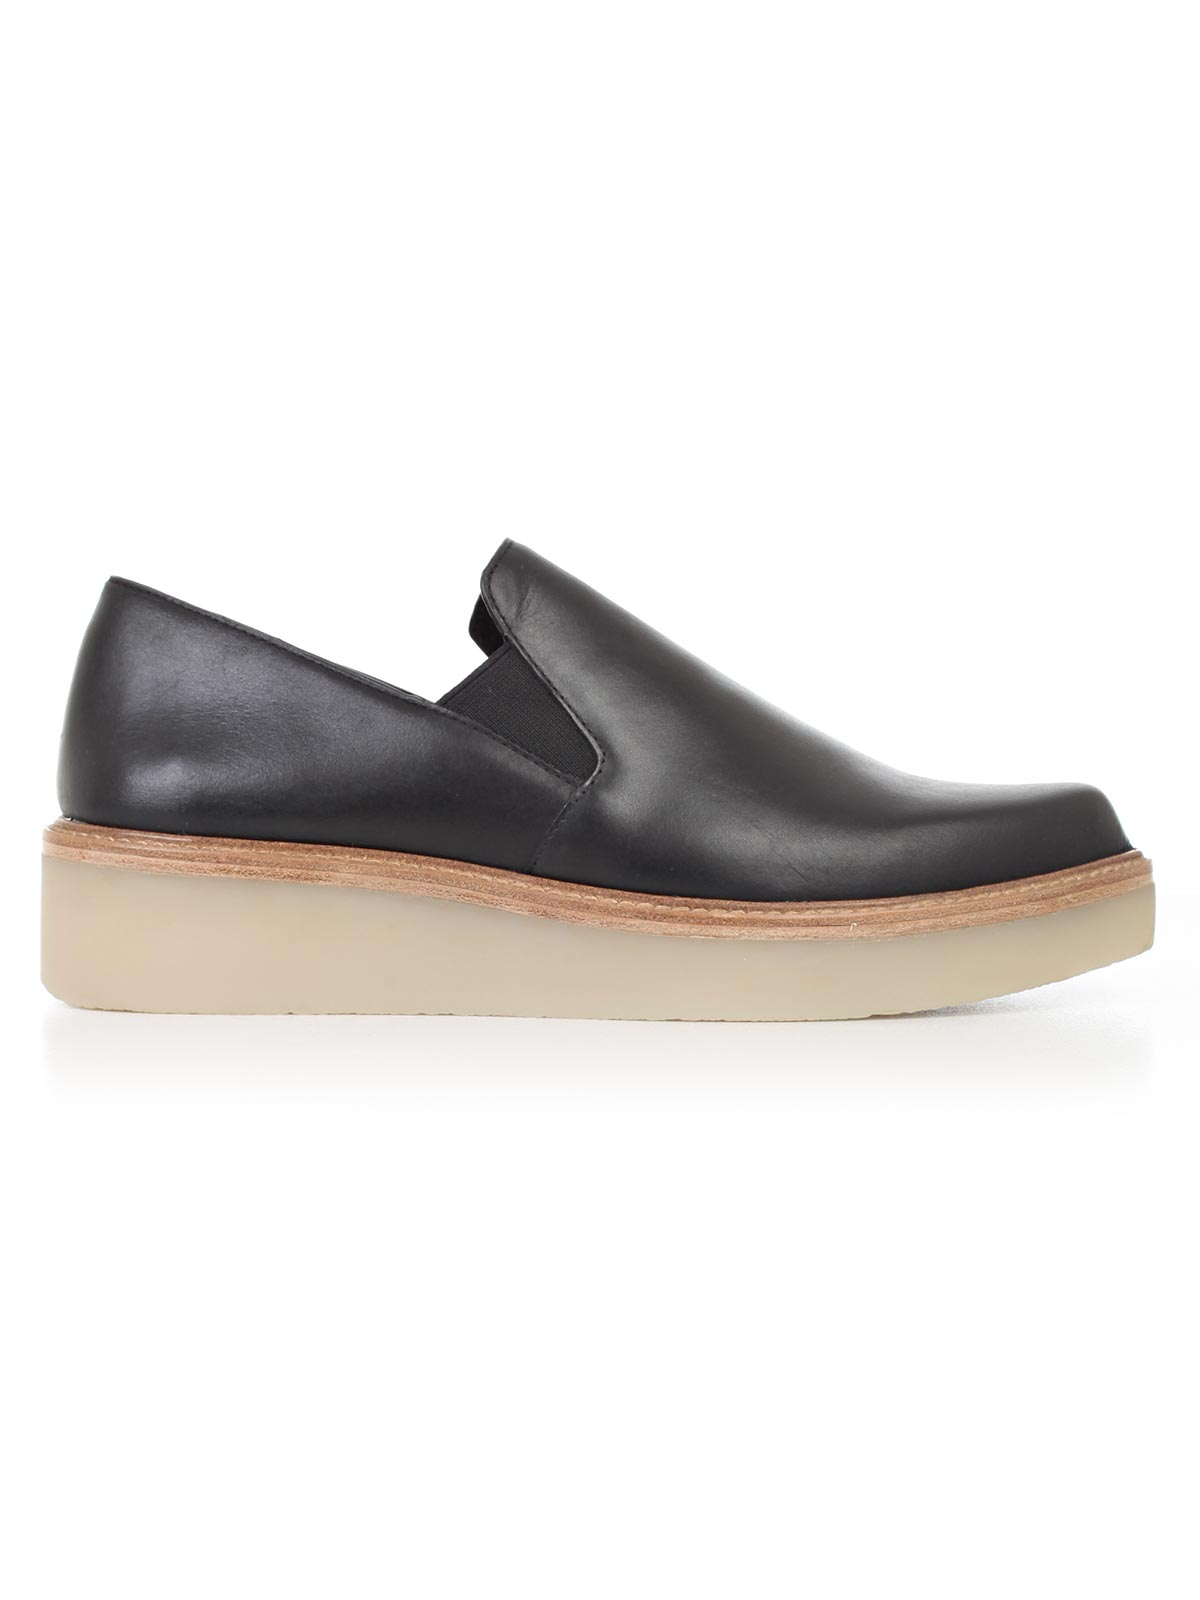 Picture of DKNY FOOTWEAR KARA SLIP ON FLAT